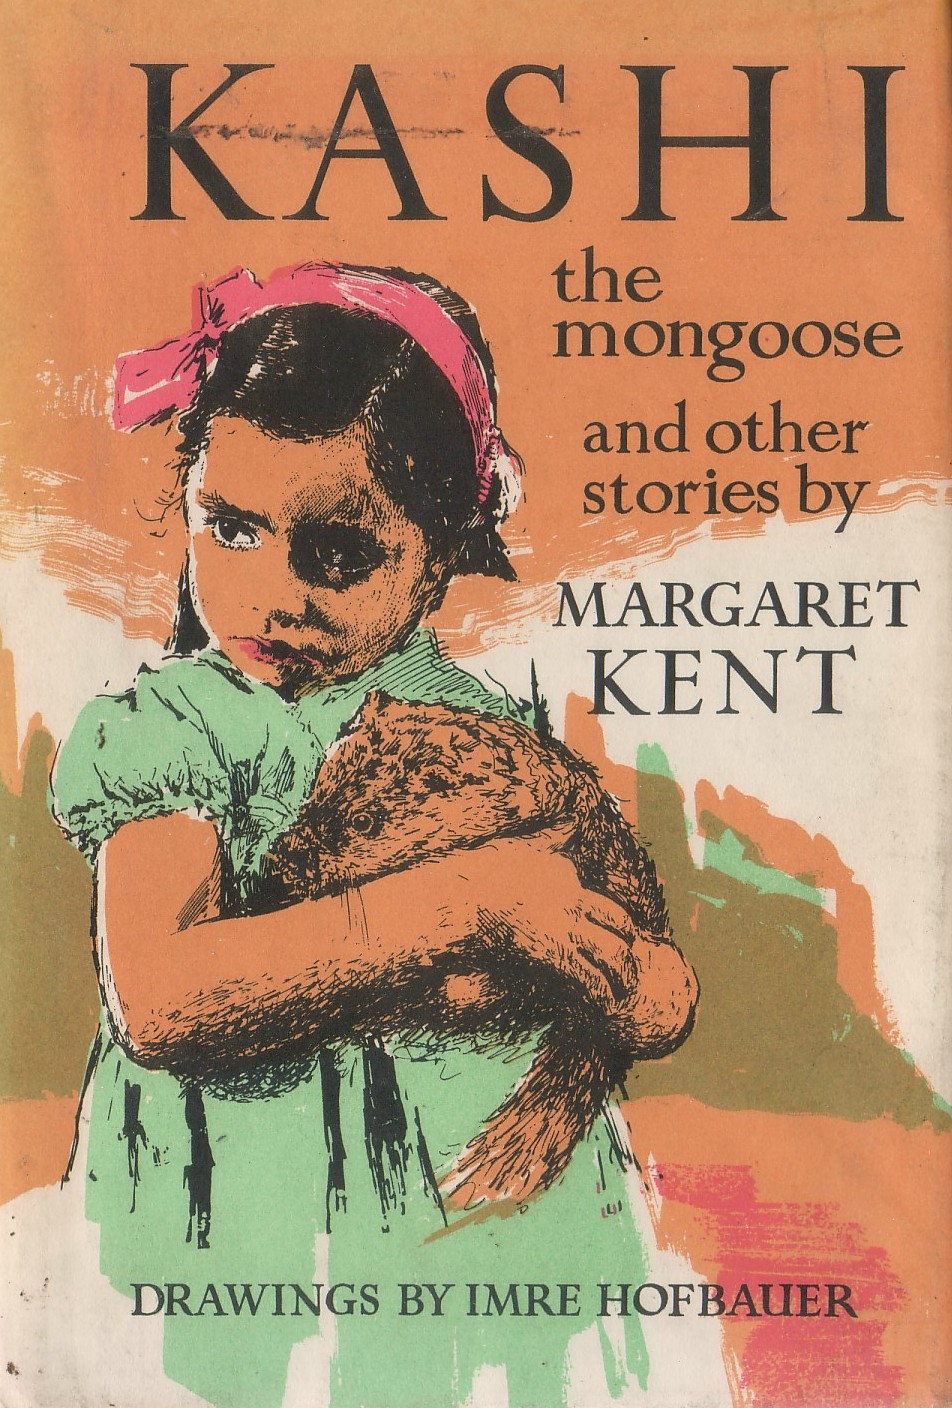 Kashi the Mongoose and other stories -